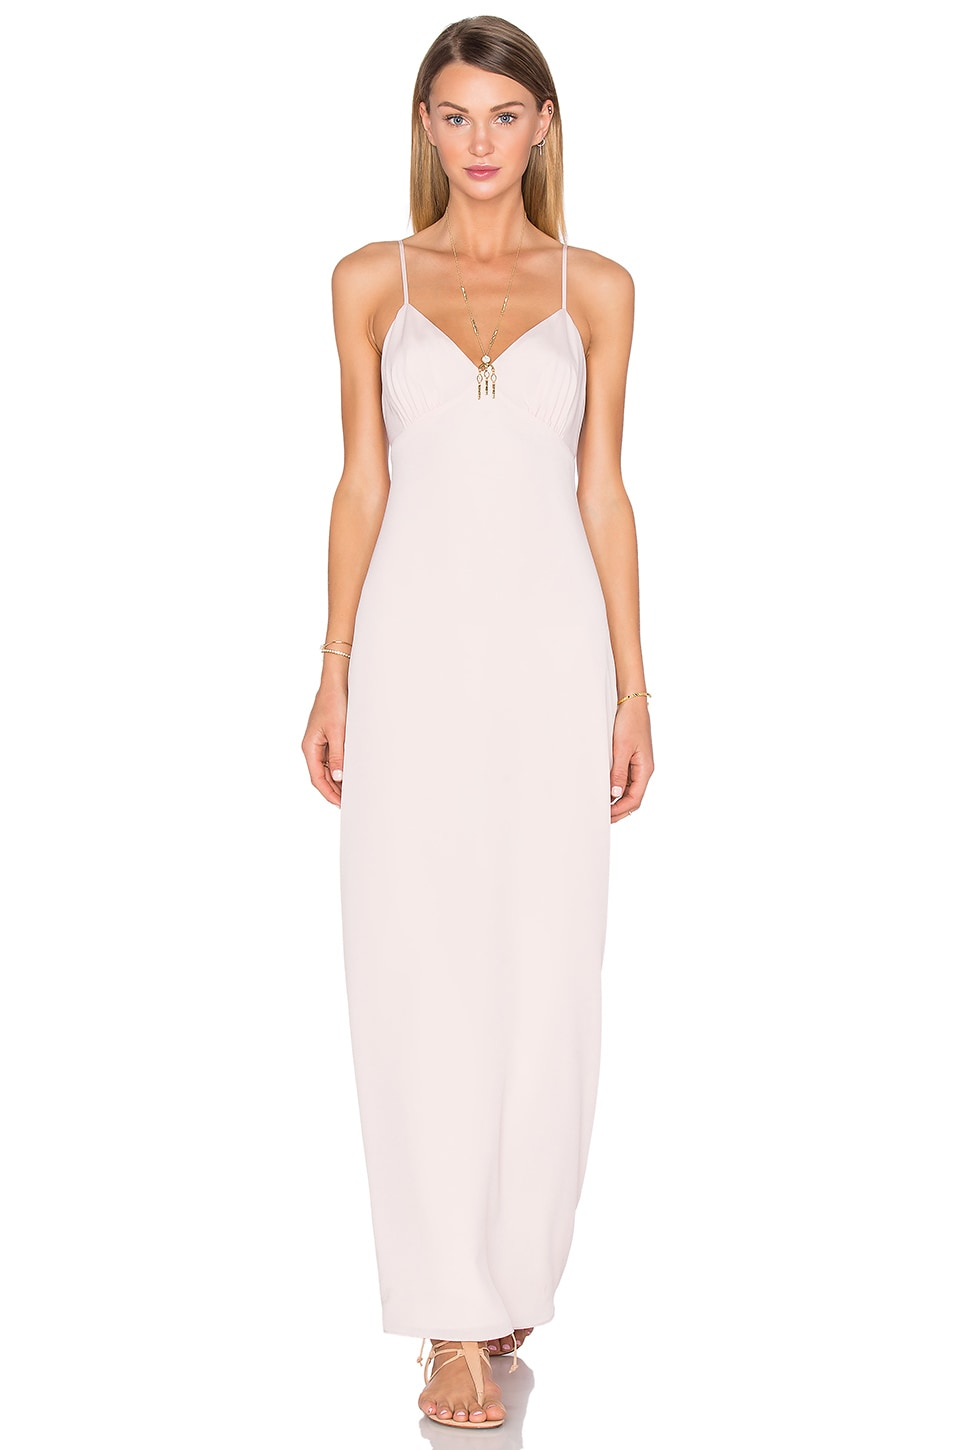 House of Harlow 1960 x REVOLVE Gina Slip Dress in Blush